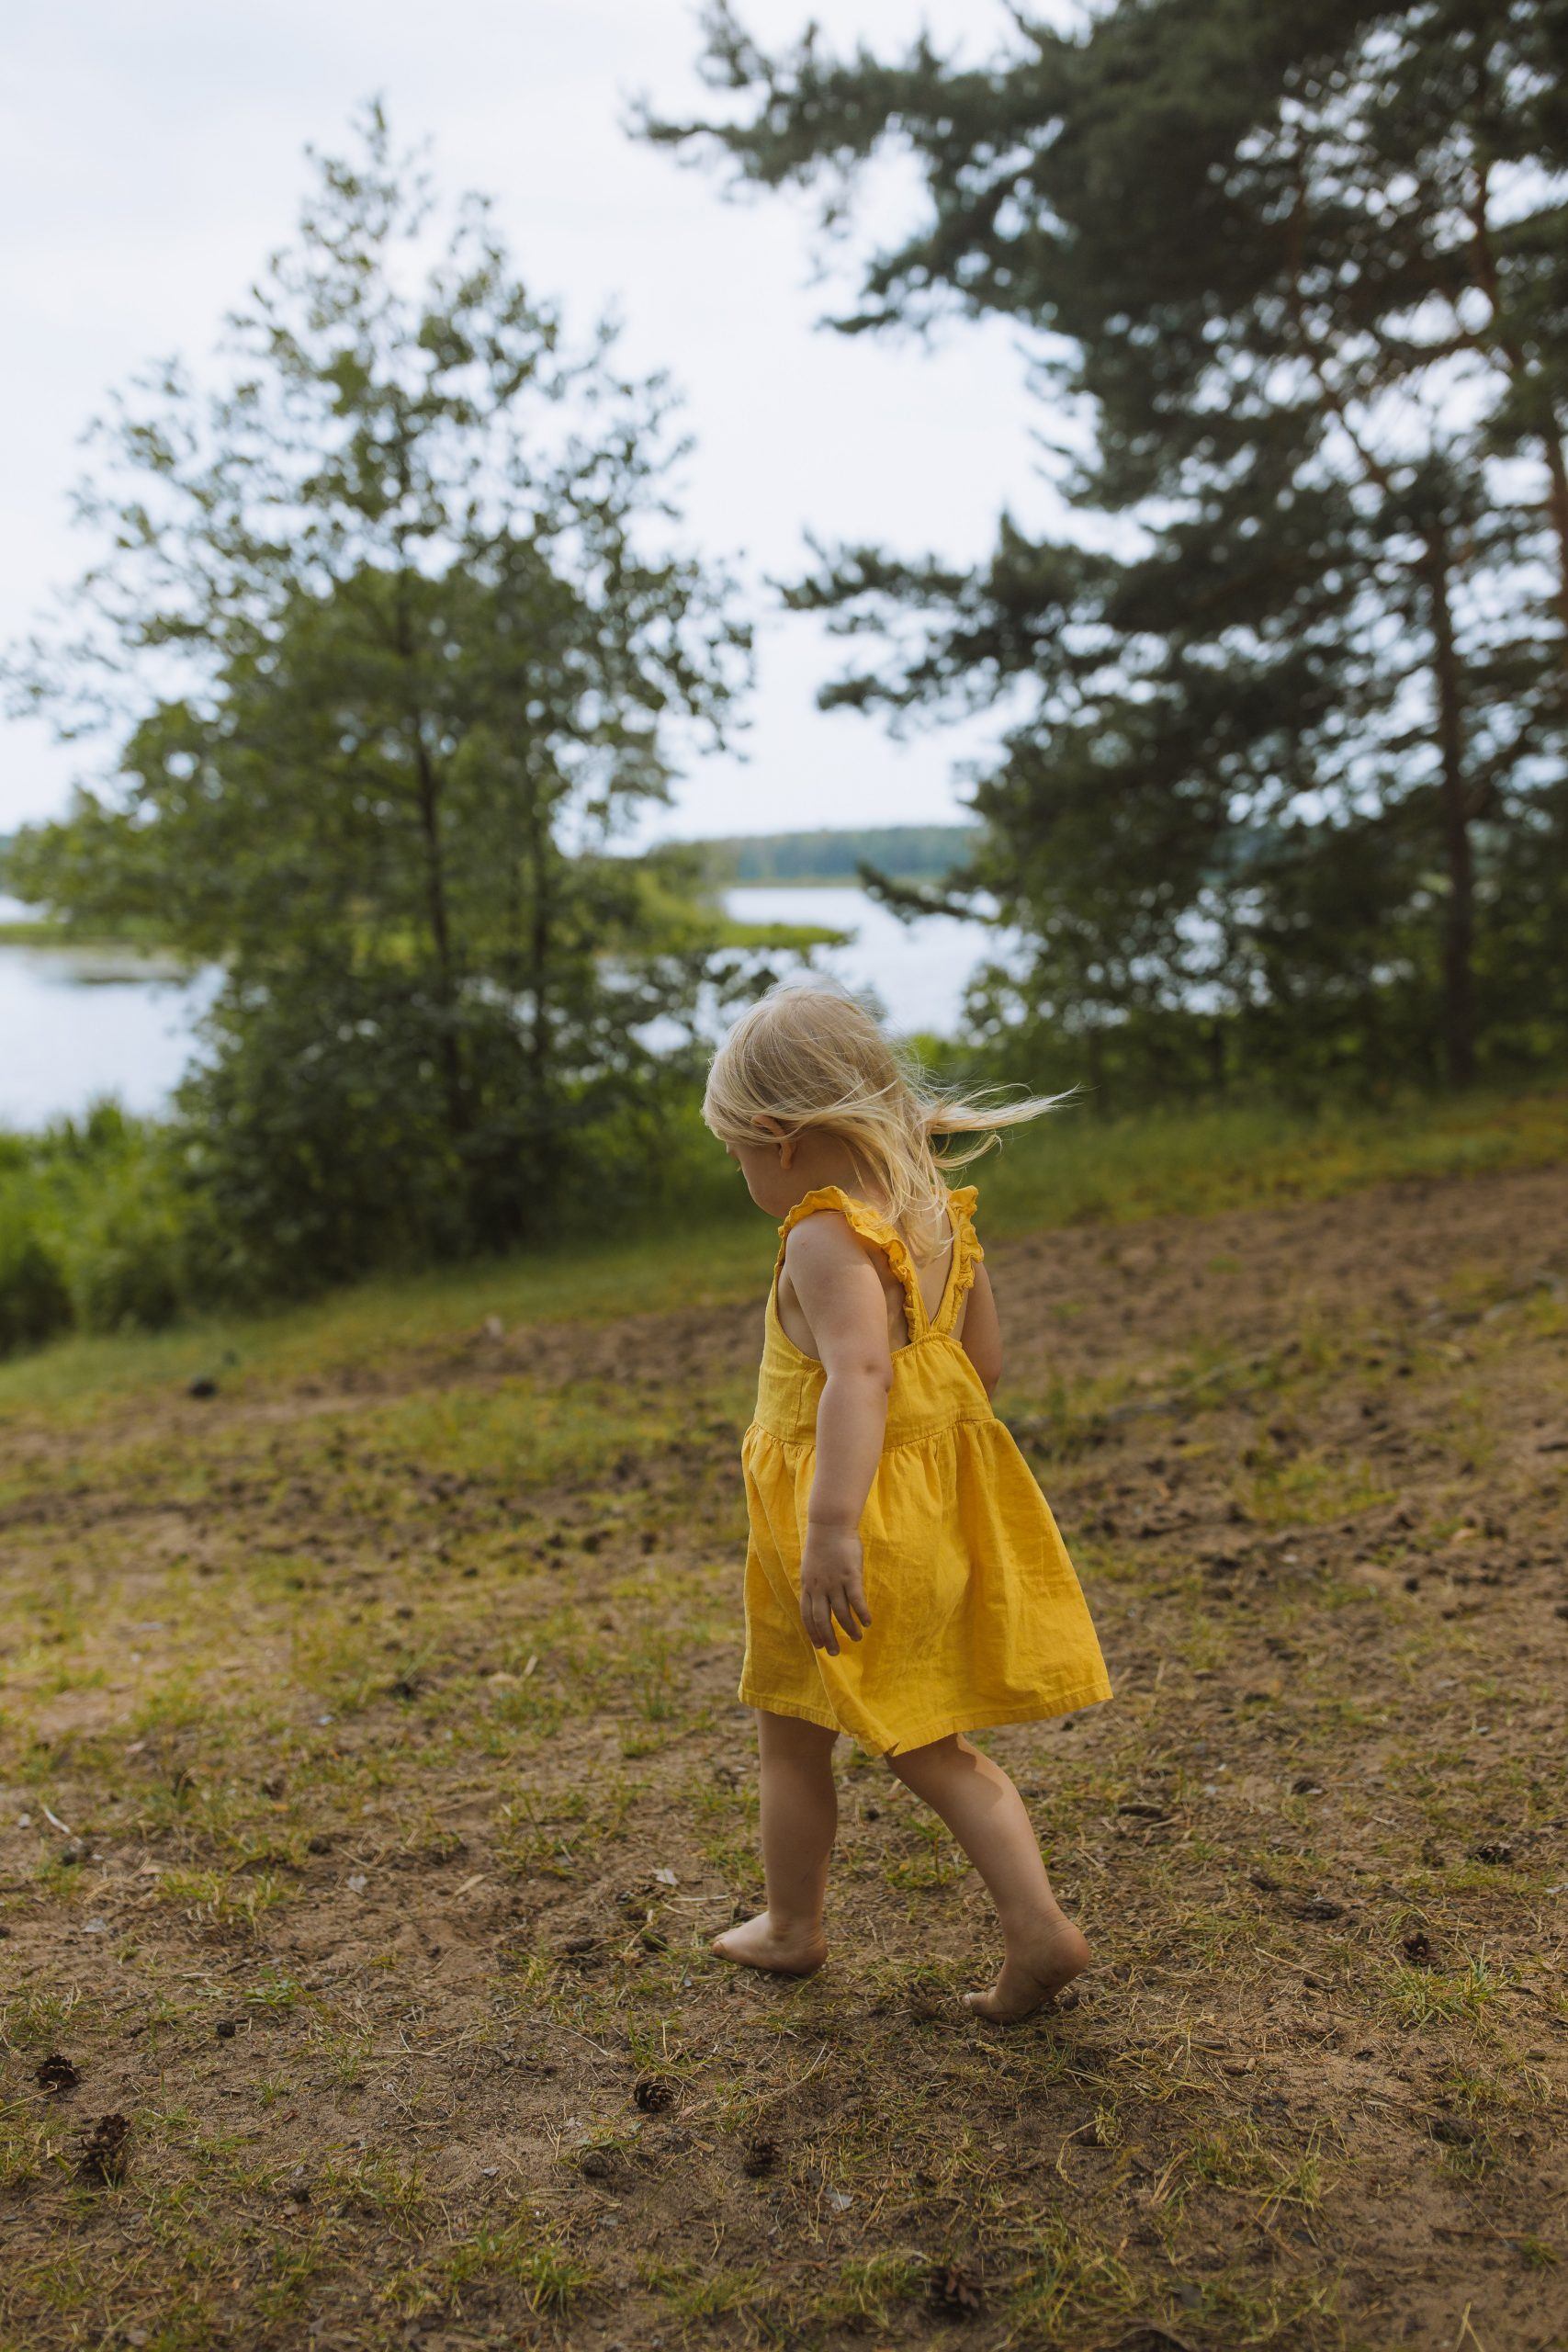 Seeing the world with the purity of a child equals peace